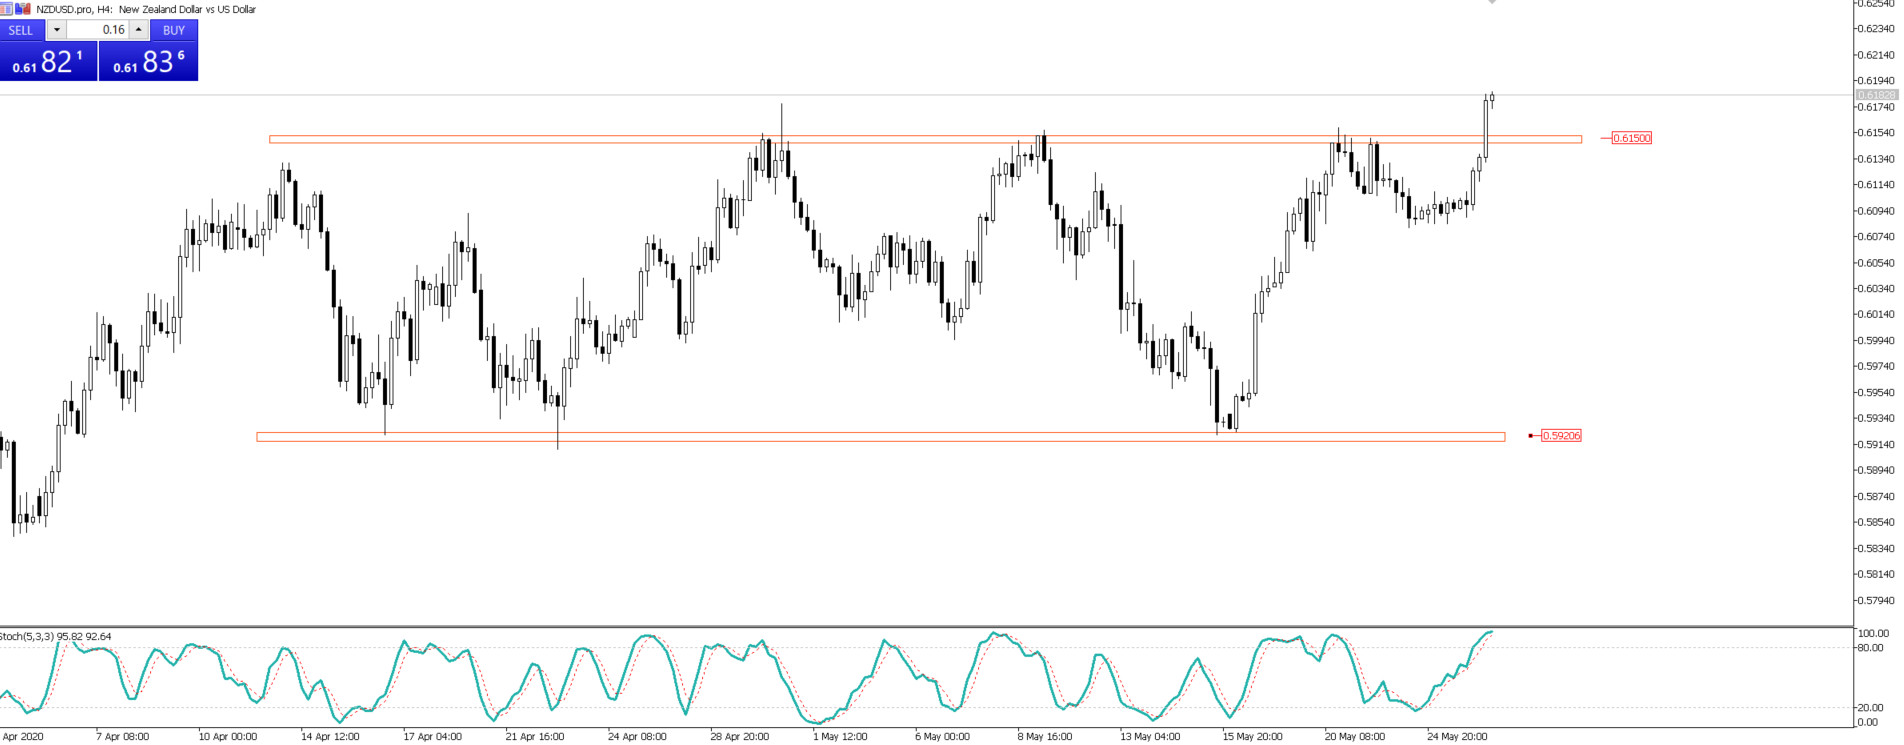 NZD/USD, H4, TMS Brokers